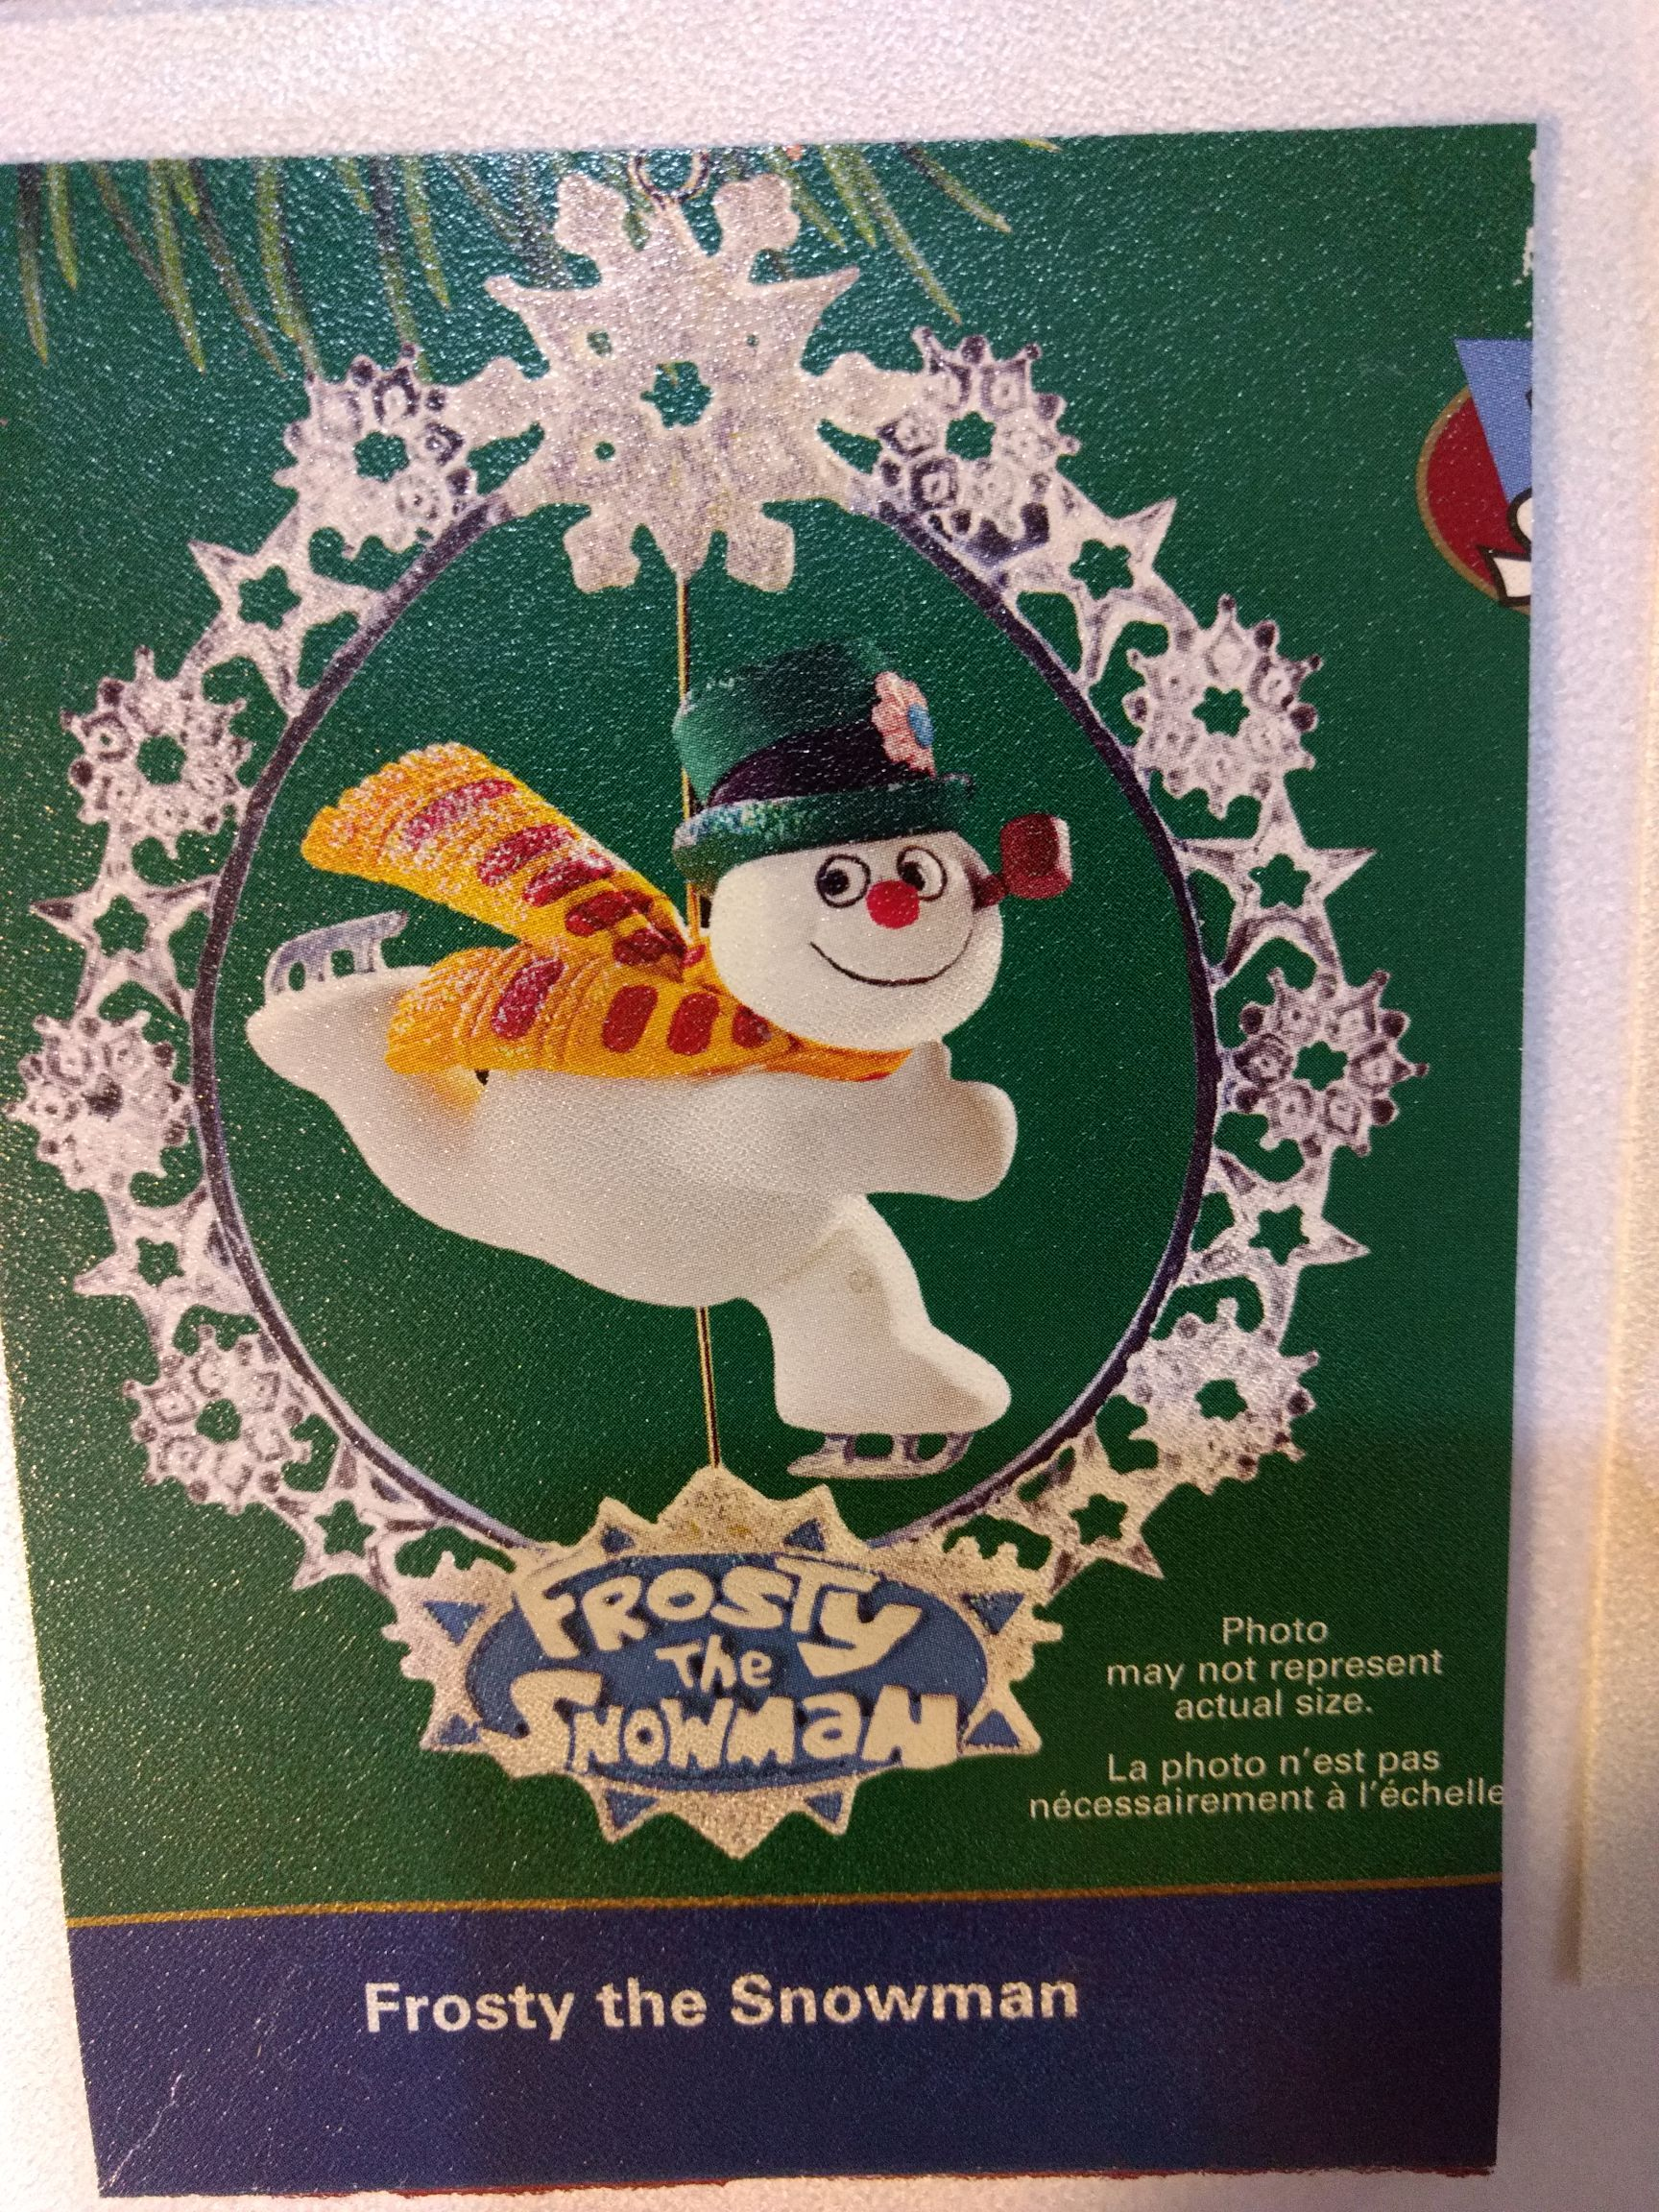 Frosty The Snowman - Snowflake Spinner Ornament - Carlton Cards front image (front cover)